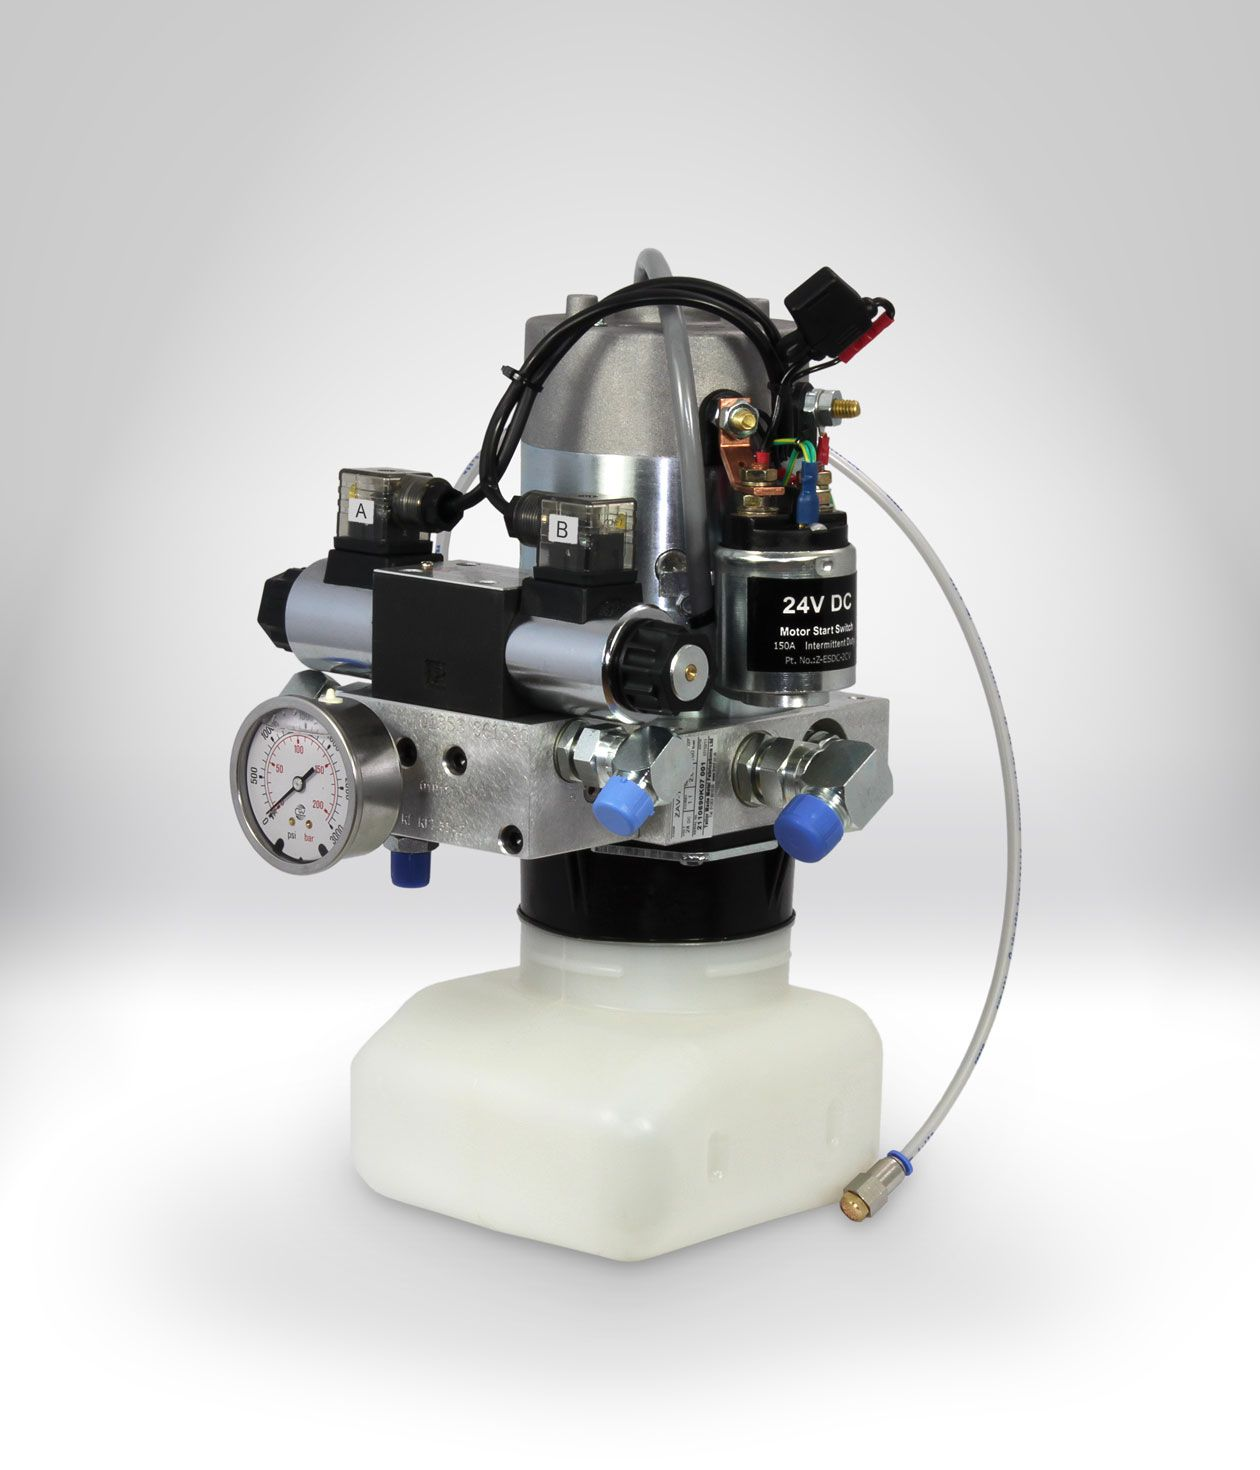 Hydraulic Mini Power Unit Produced By Related Fluid Power Www Relatedfluidpower Com Power Unit The Body Shop The Unit